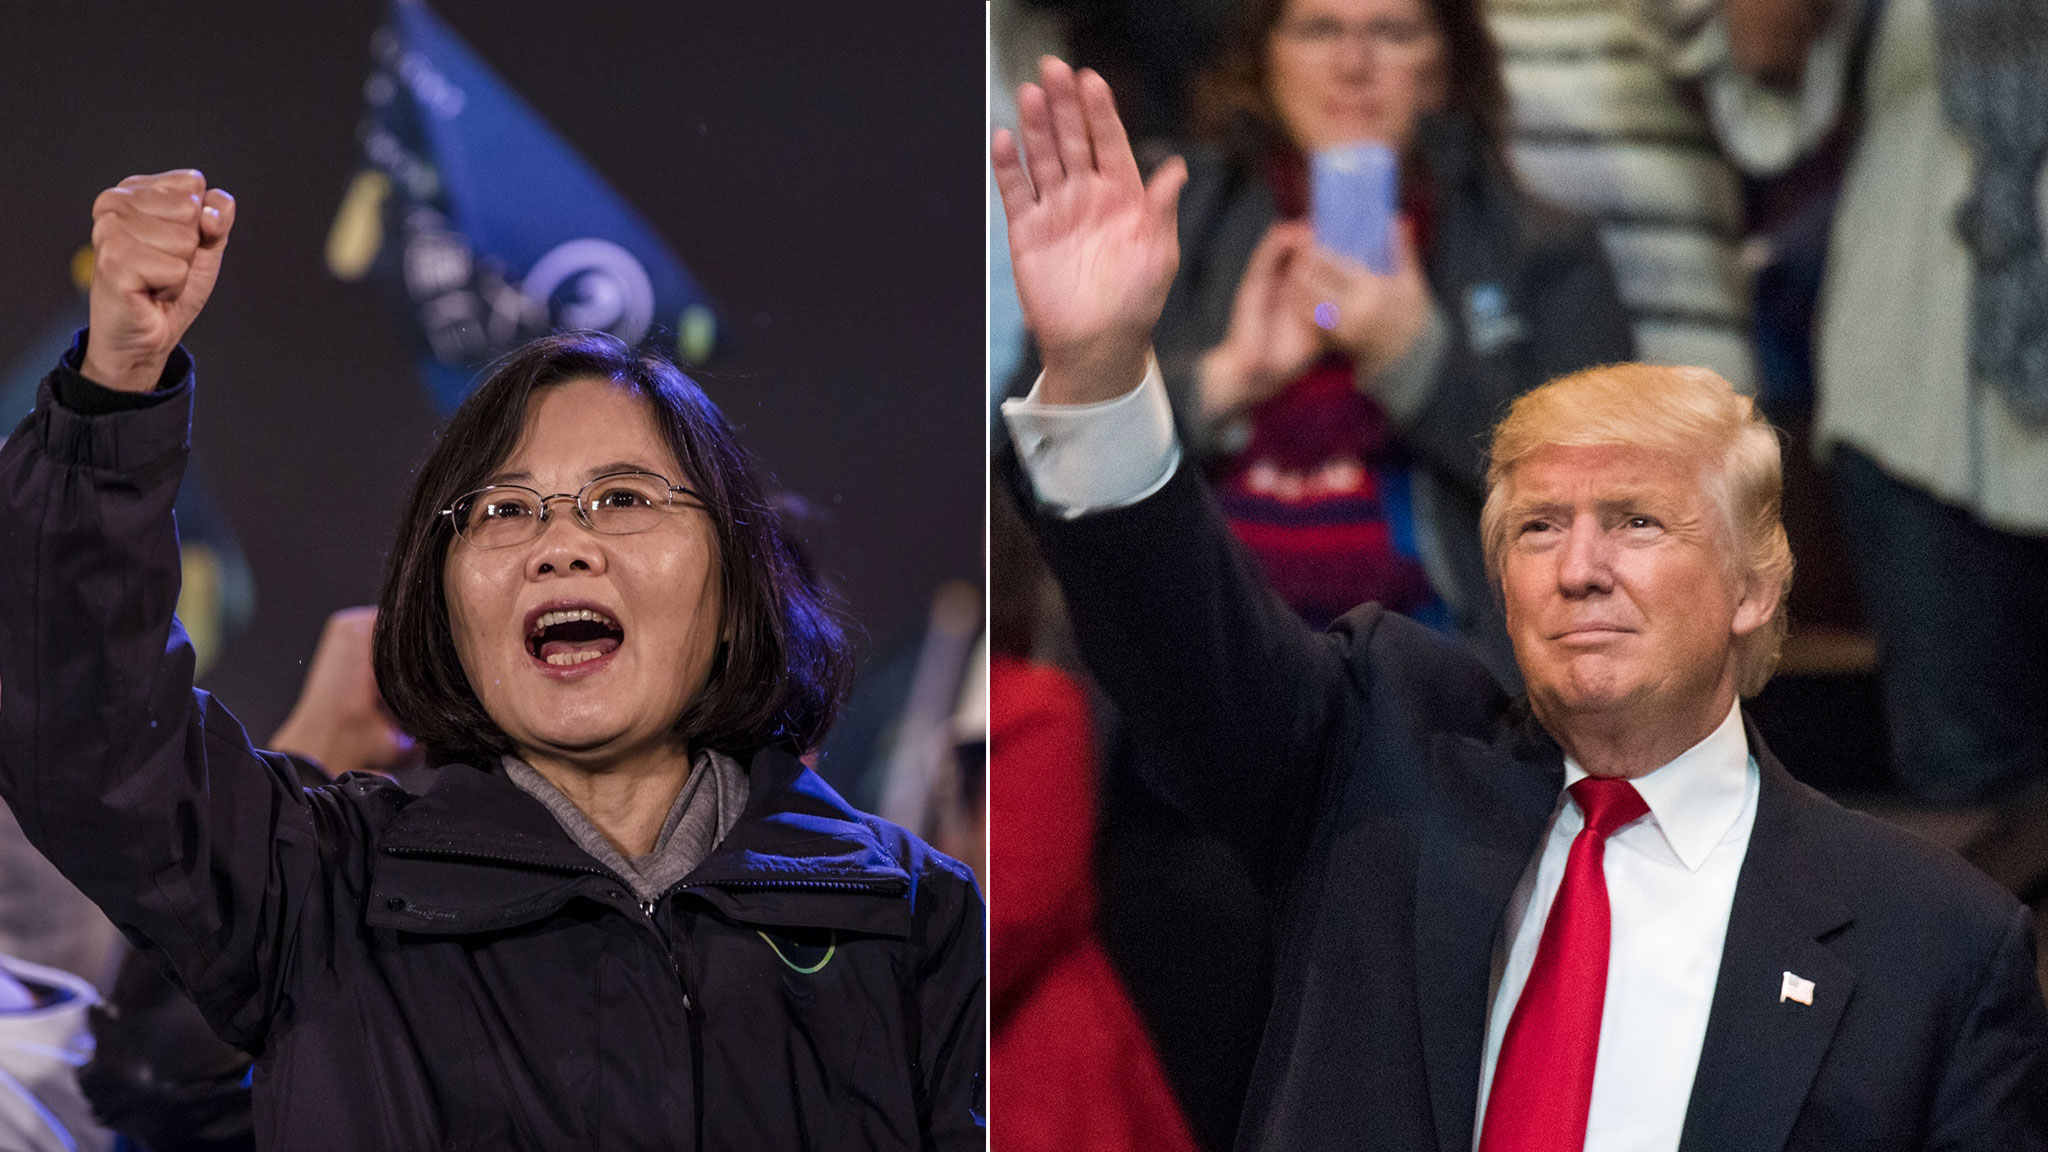 ft.com - Donald Trump risks China rift with Taiwan call